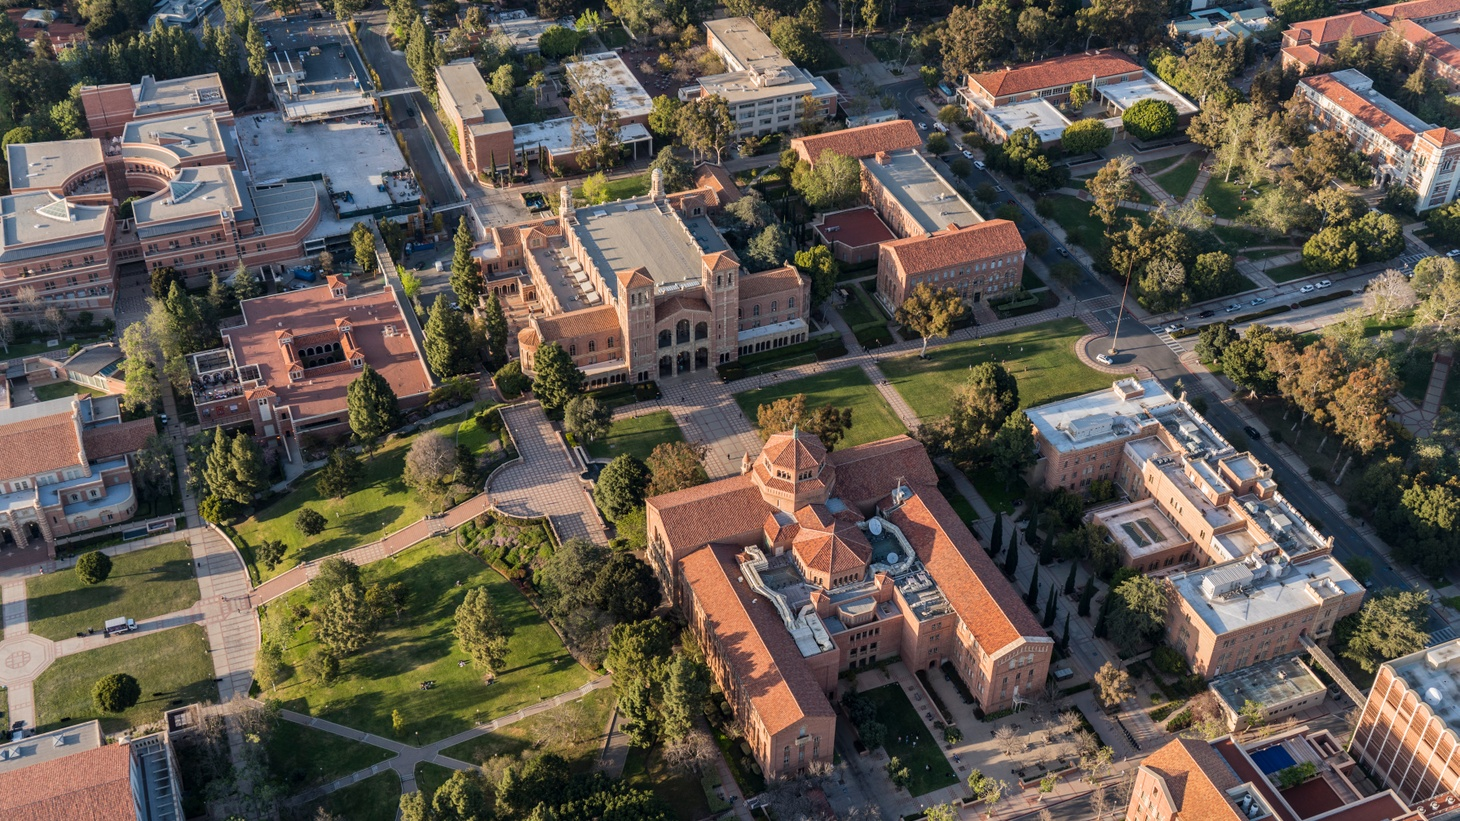 This aerial view shows UCLA's Royce Hall, Powell Library, and surrounding north campus buildings. The University of California is requiring students and faculty to submit proof of COVID vaccination to access on-campus facilities.